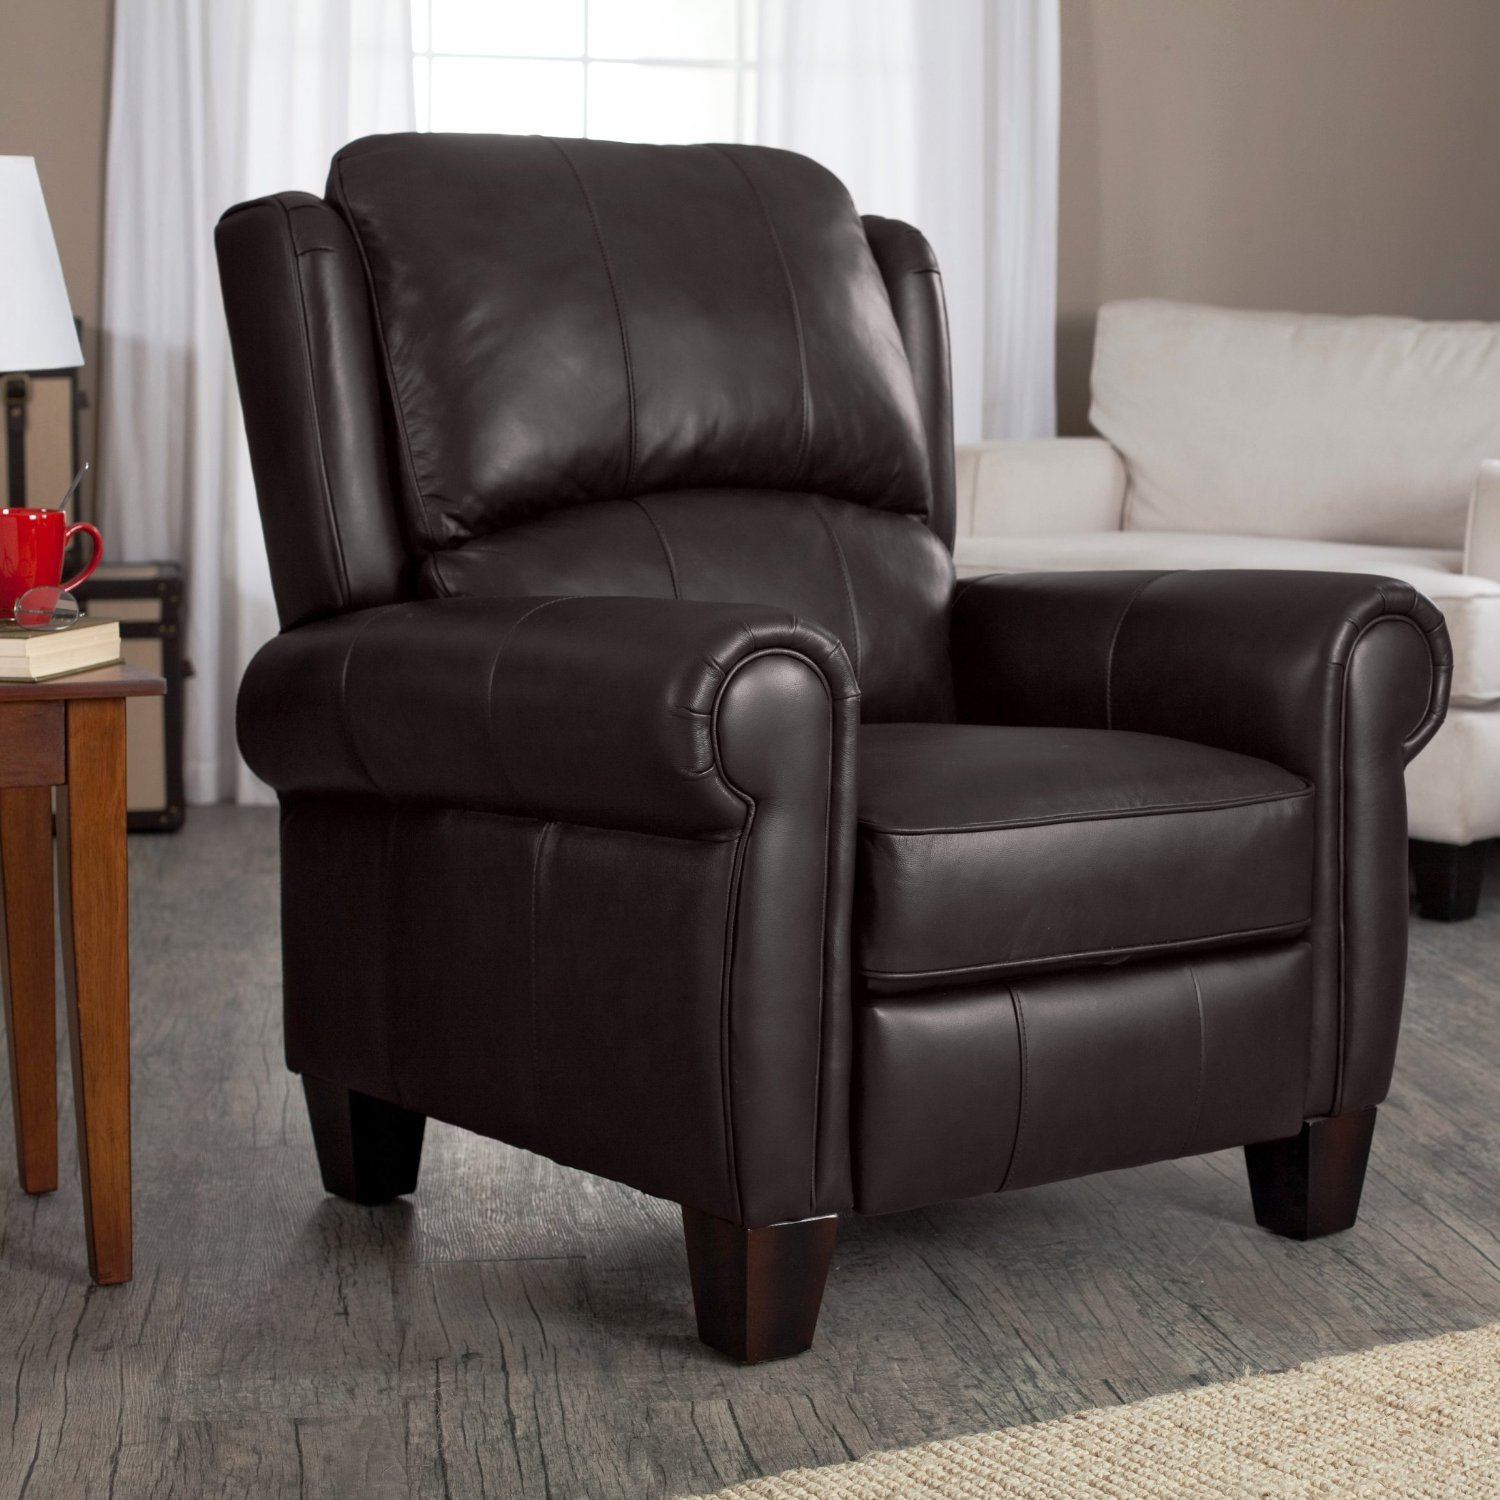 Office recliners Ultimate Buy Brown Leather Reclinerliving Room Furniturebarcalounger Office Chair Recliners Charleston Wingbackbuy Today In Cheap Price On Malibabacom Alibaba Buy Brown Leather Reclinerliving Room Furniturebarcalounger Office